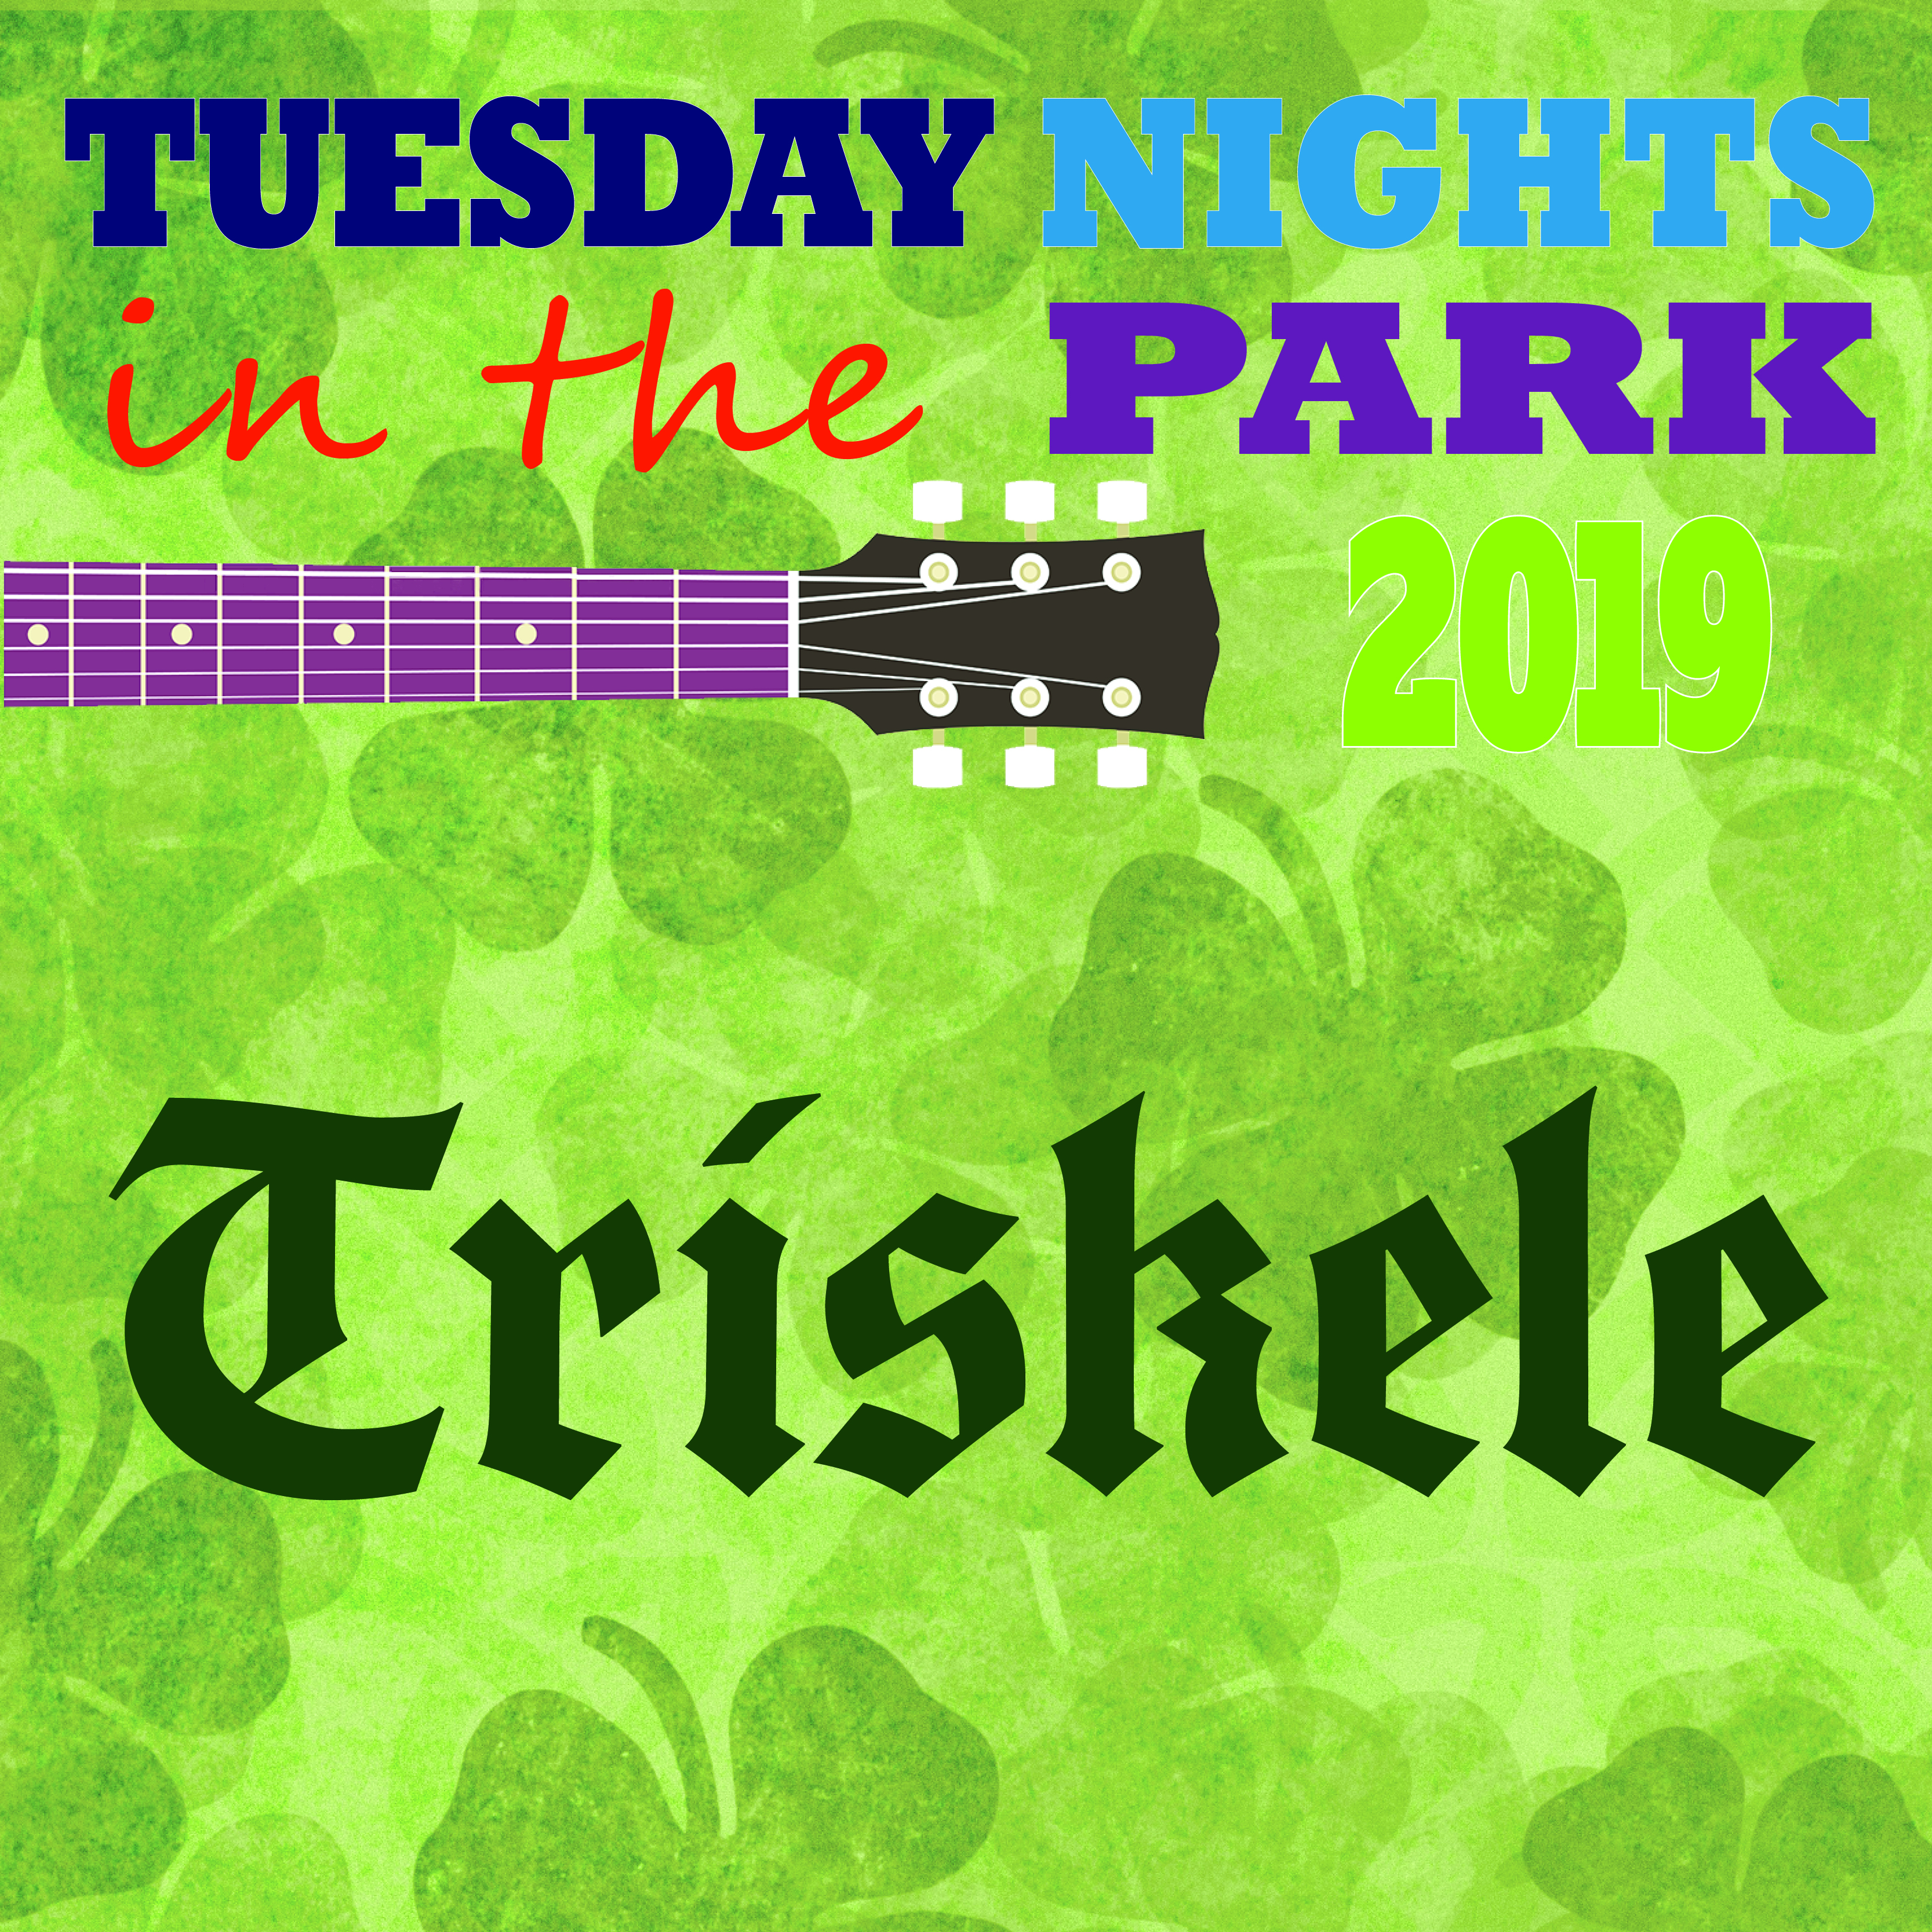 Tuesday Nights in the Park Concert - Triskele @ Cook Park, Frank A Leak Amphitheater for the Arts